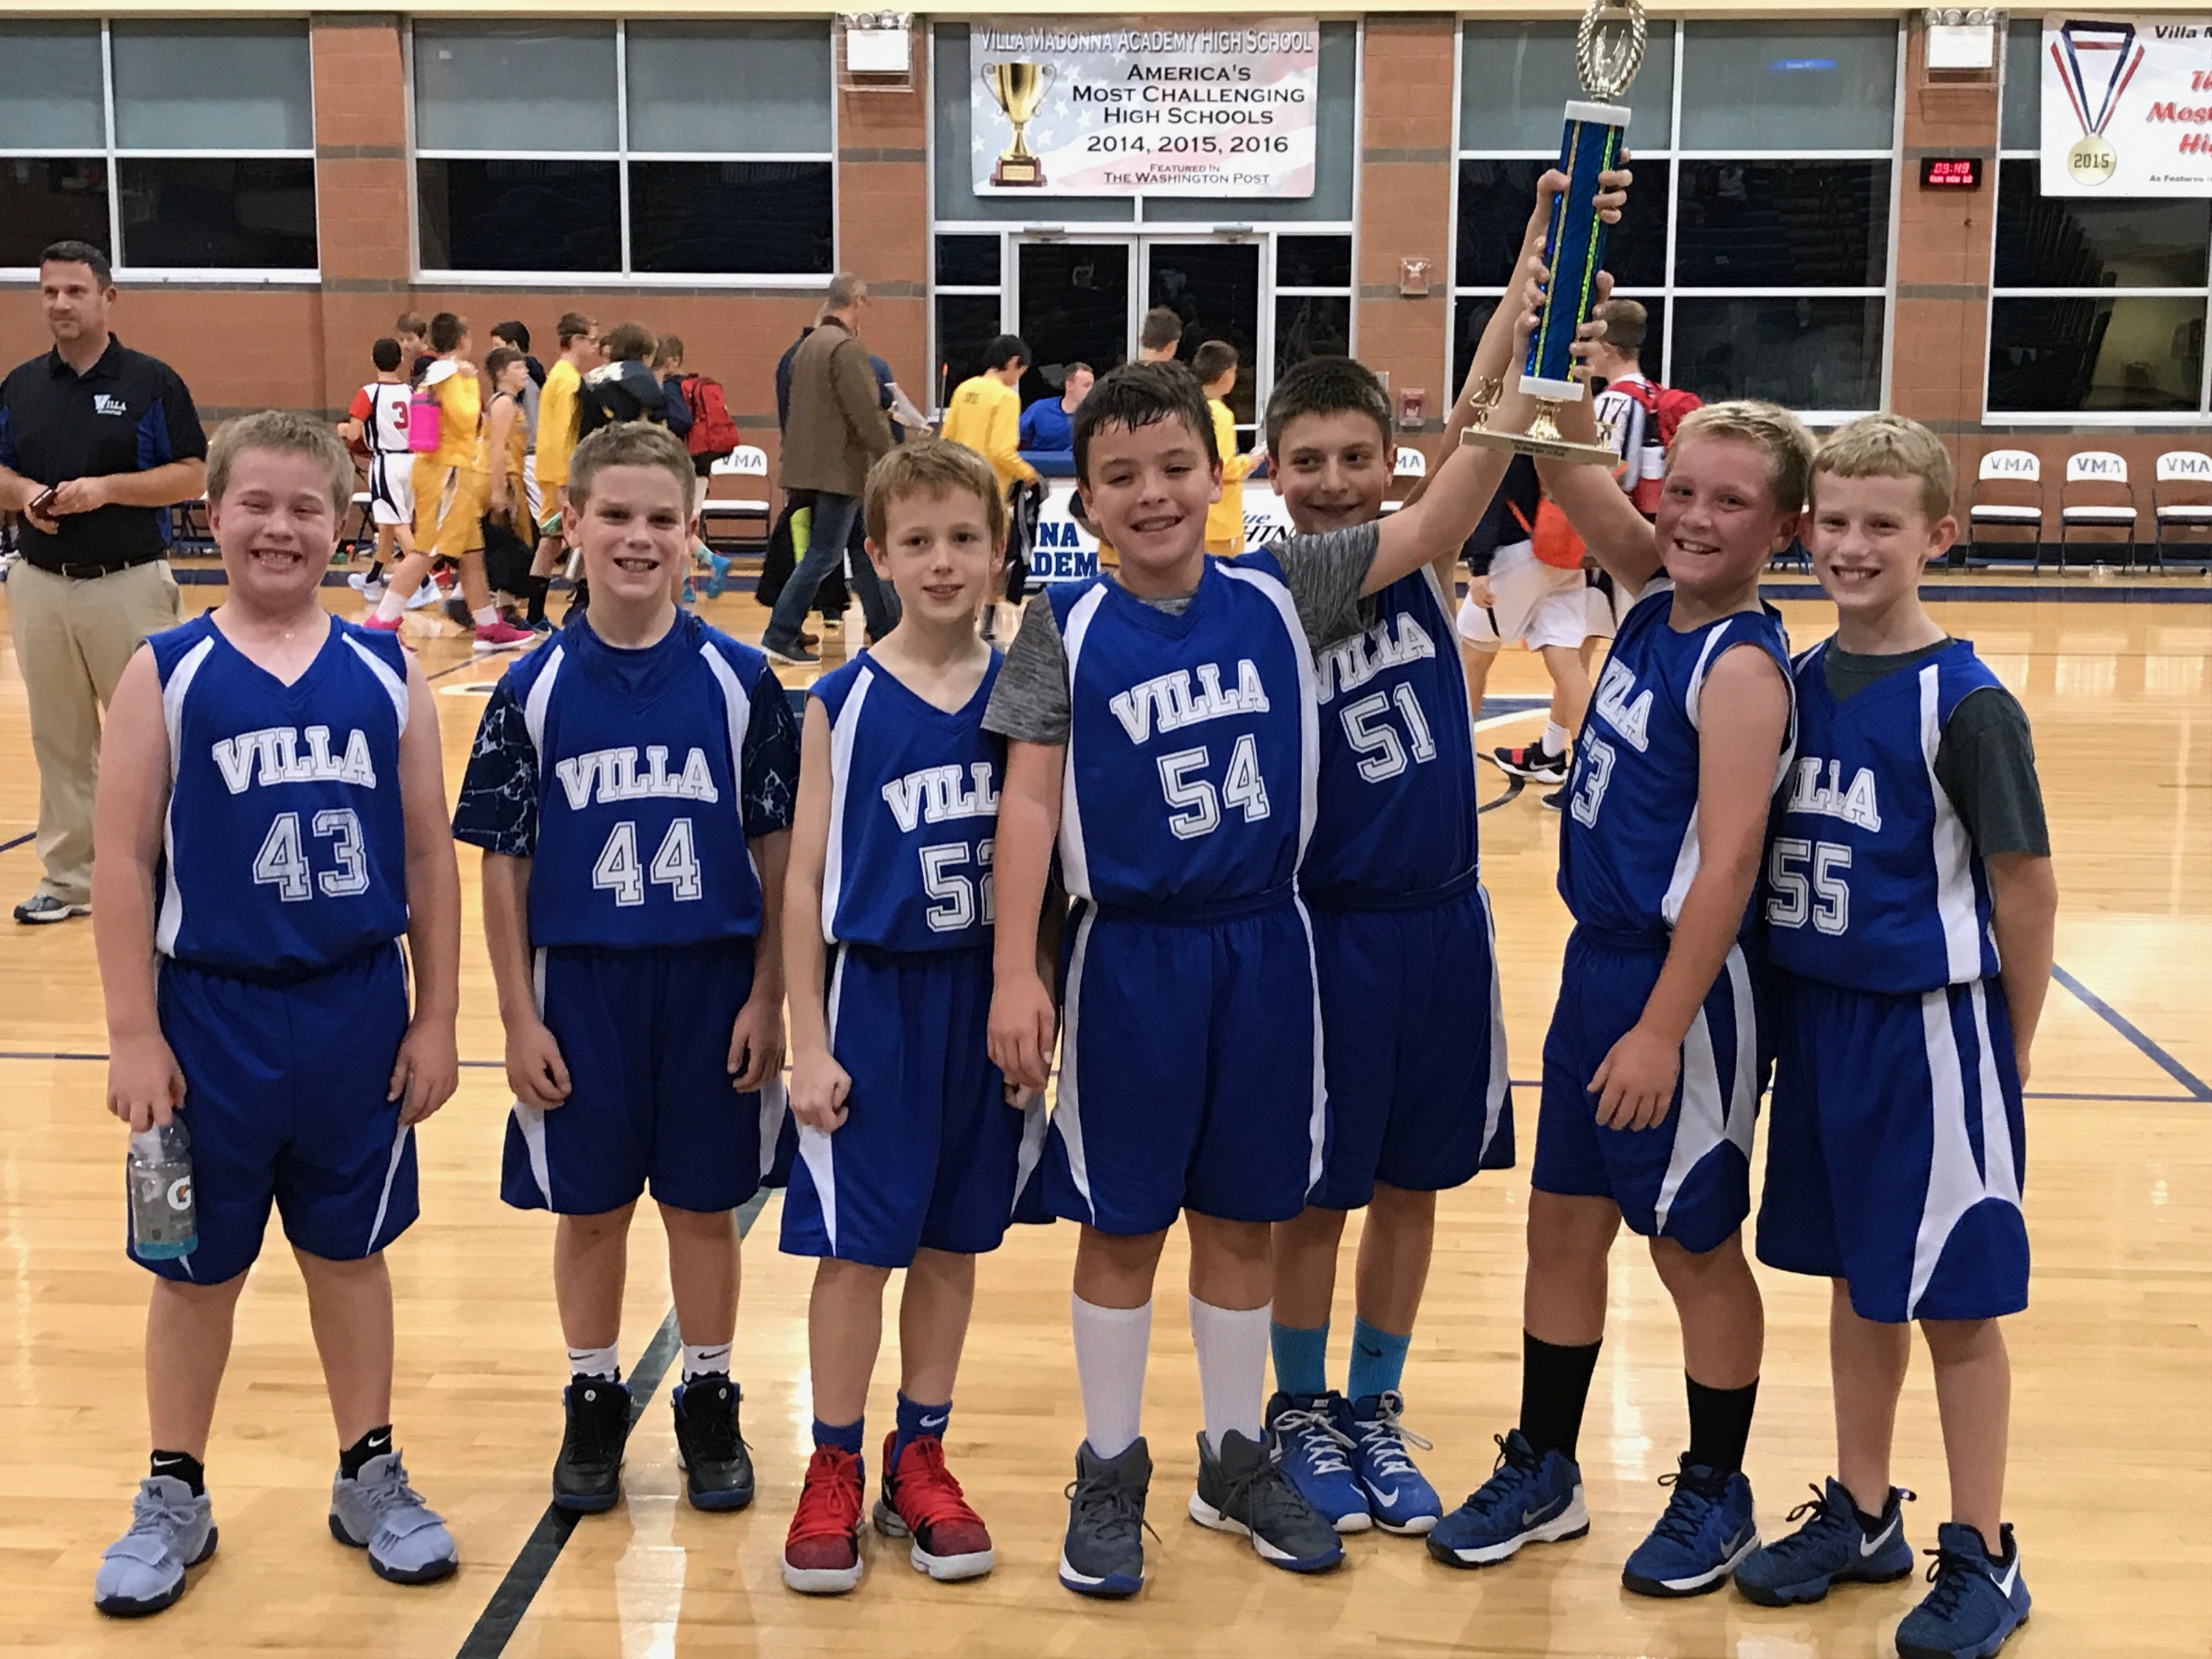 5th_grade_boys_tournament.jpg